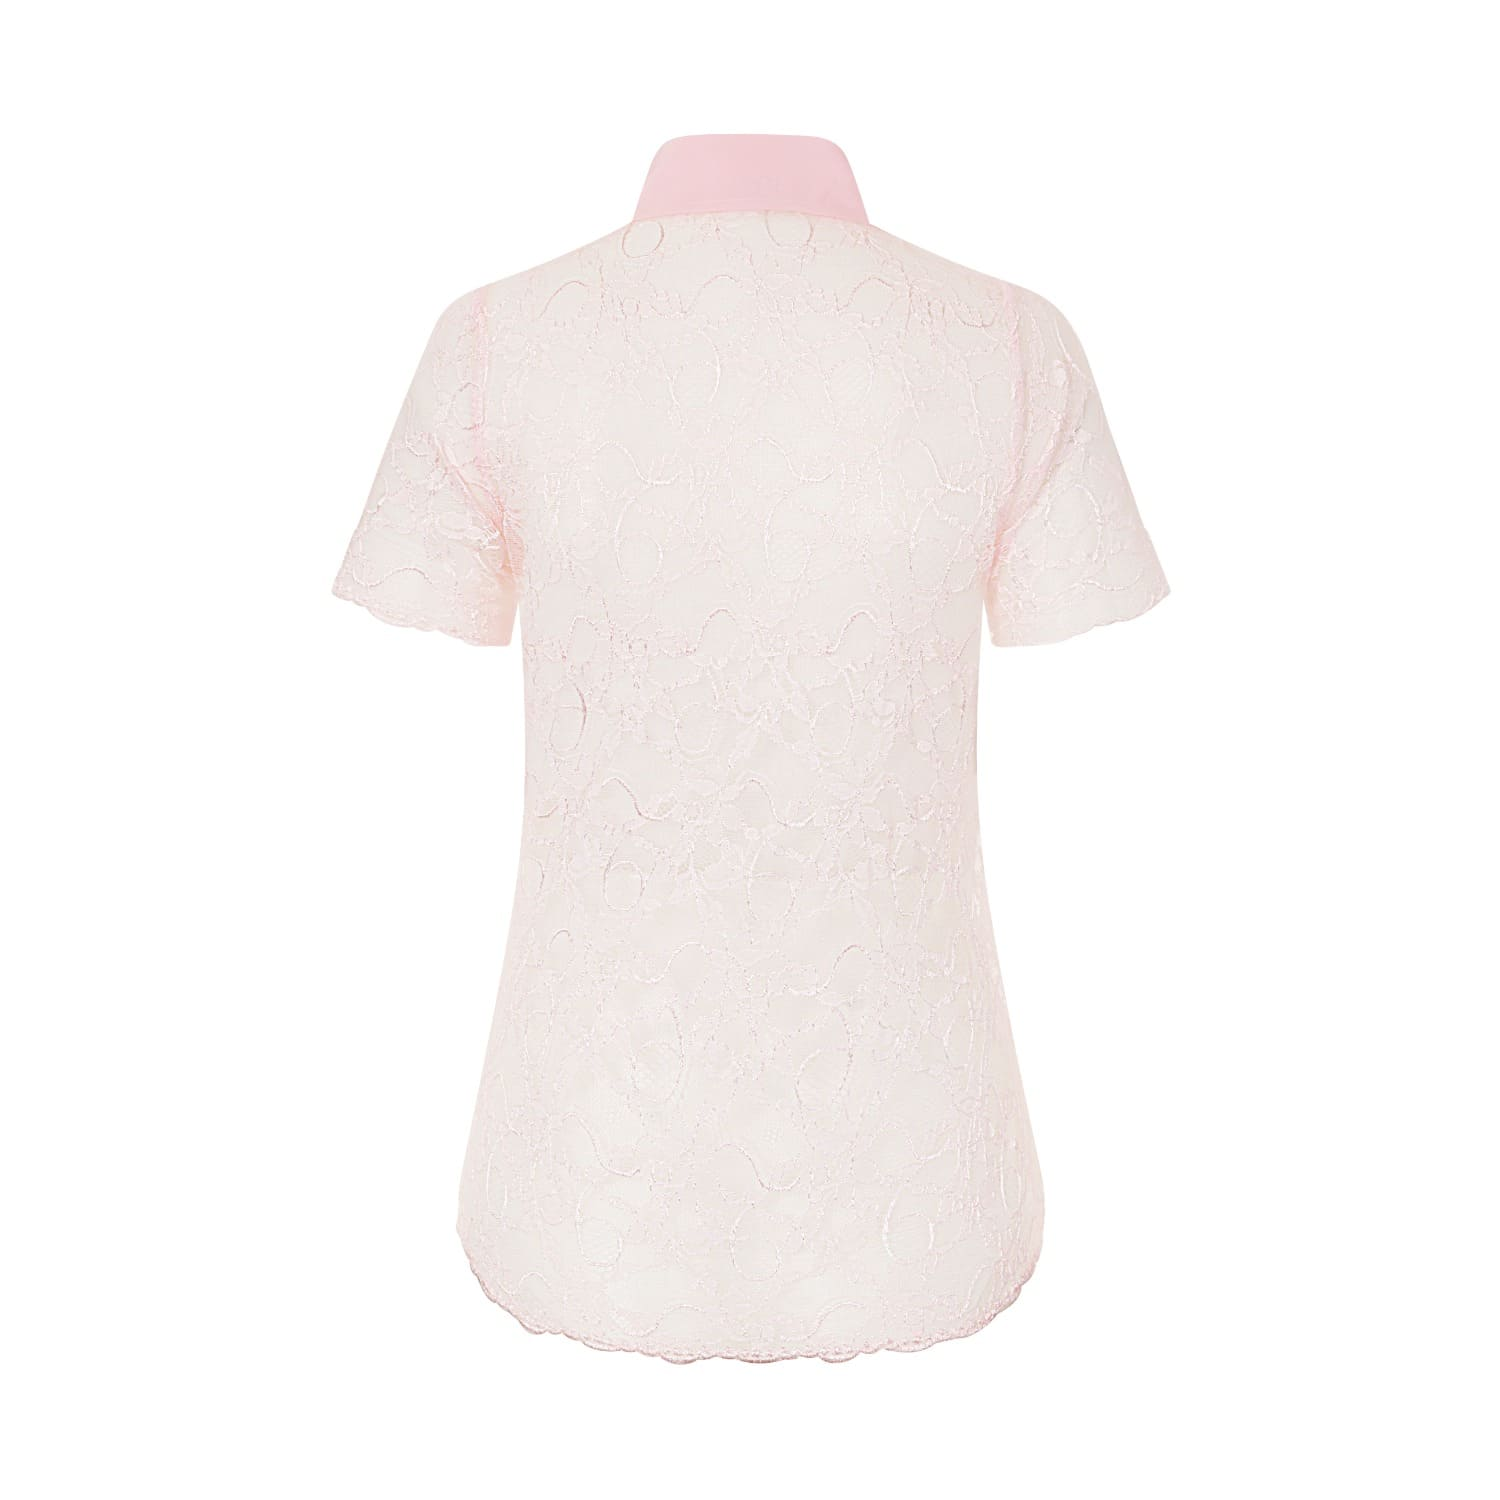 Pale Pink Lace Shirt Sophie Cameron Davies Wolf Badger